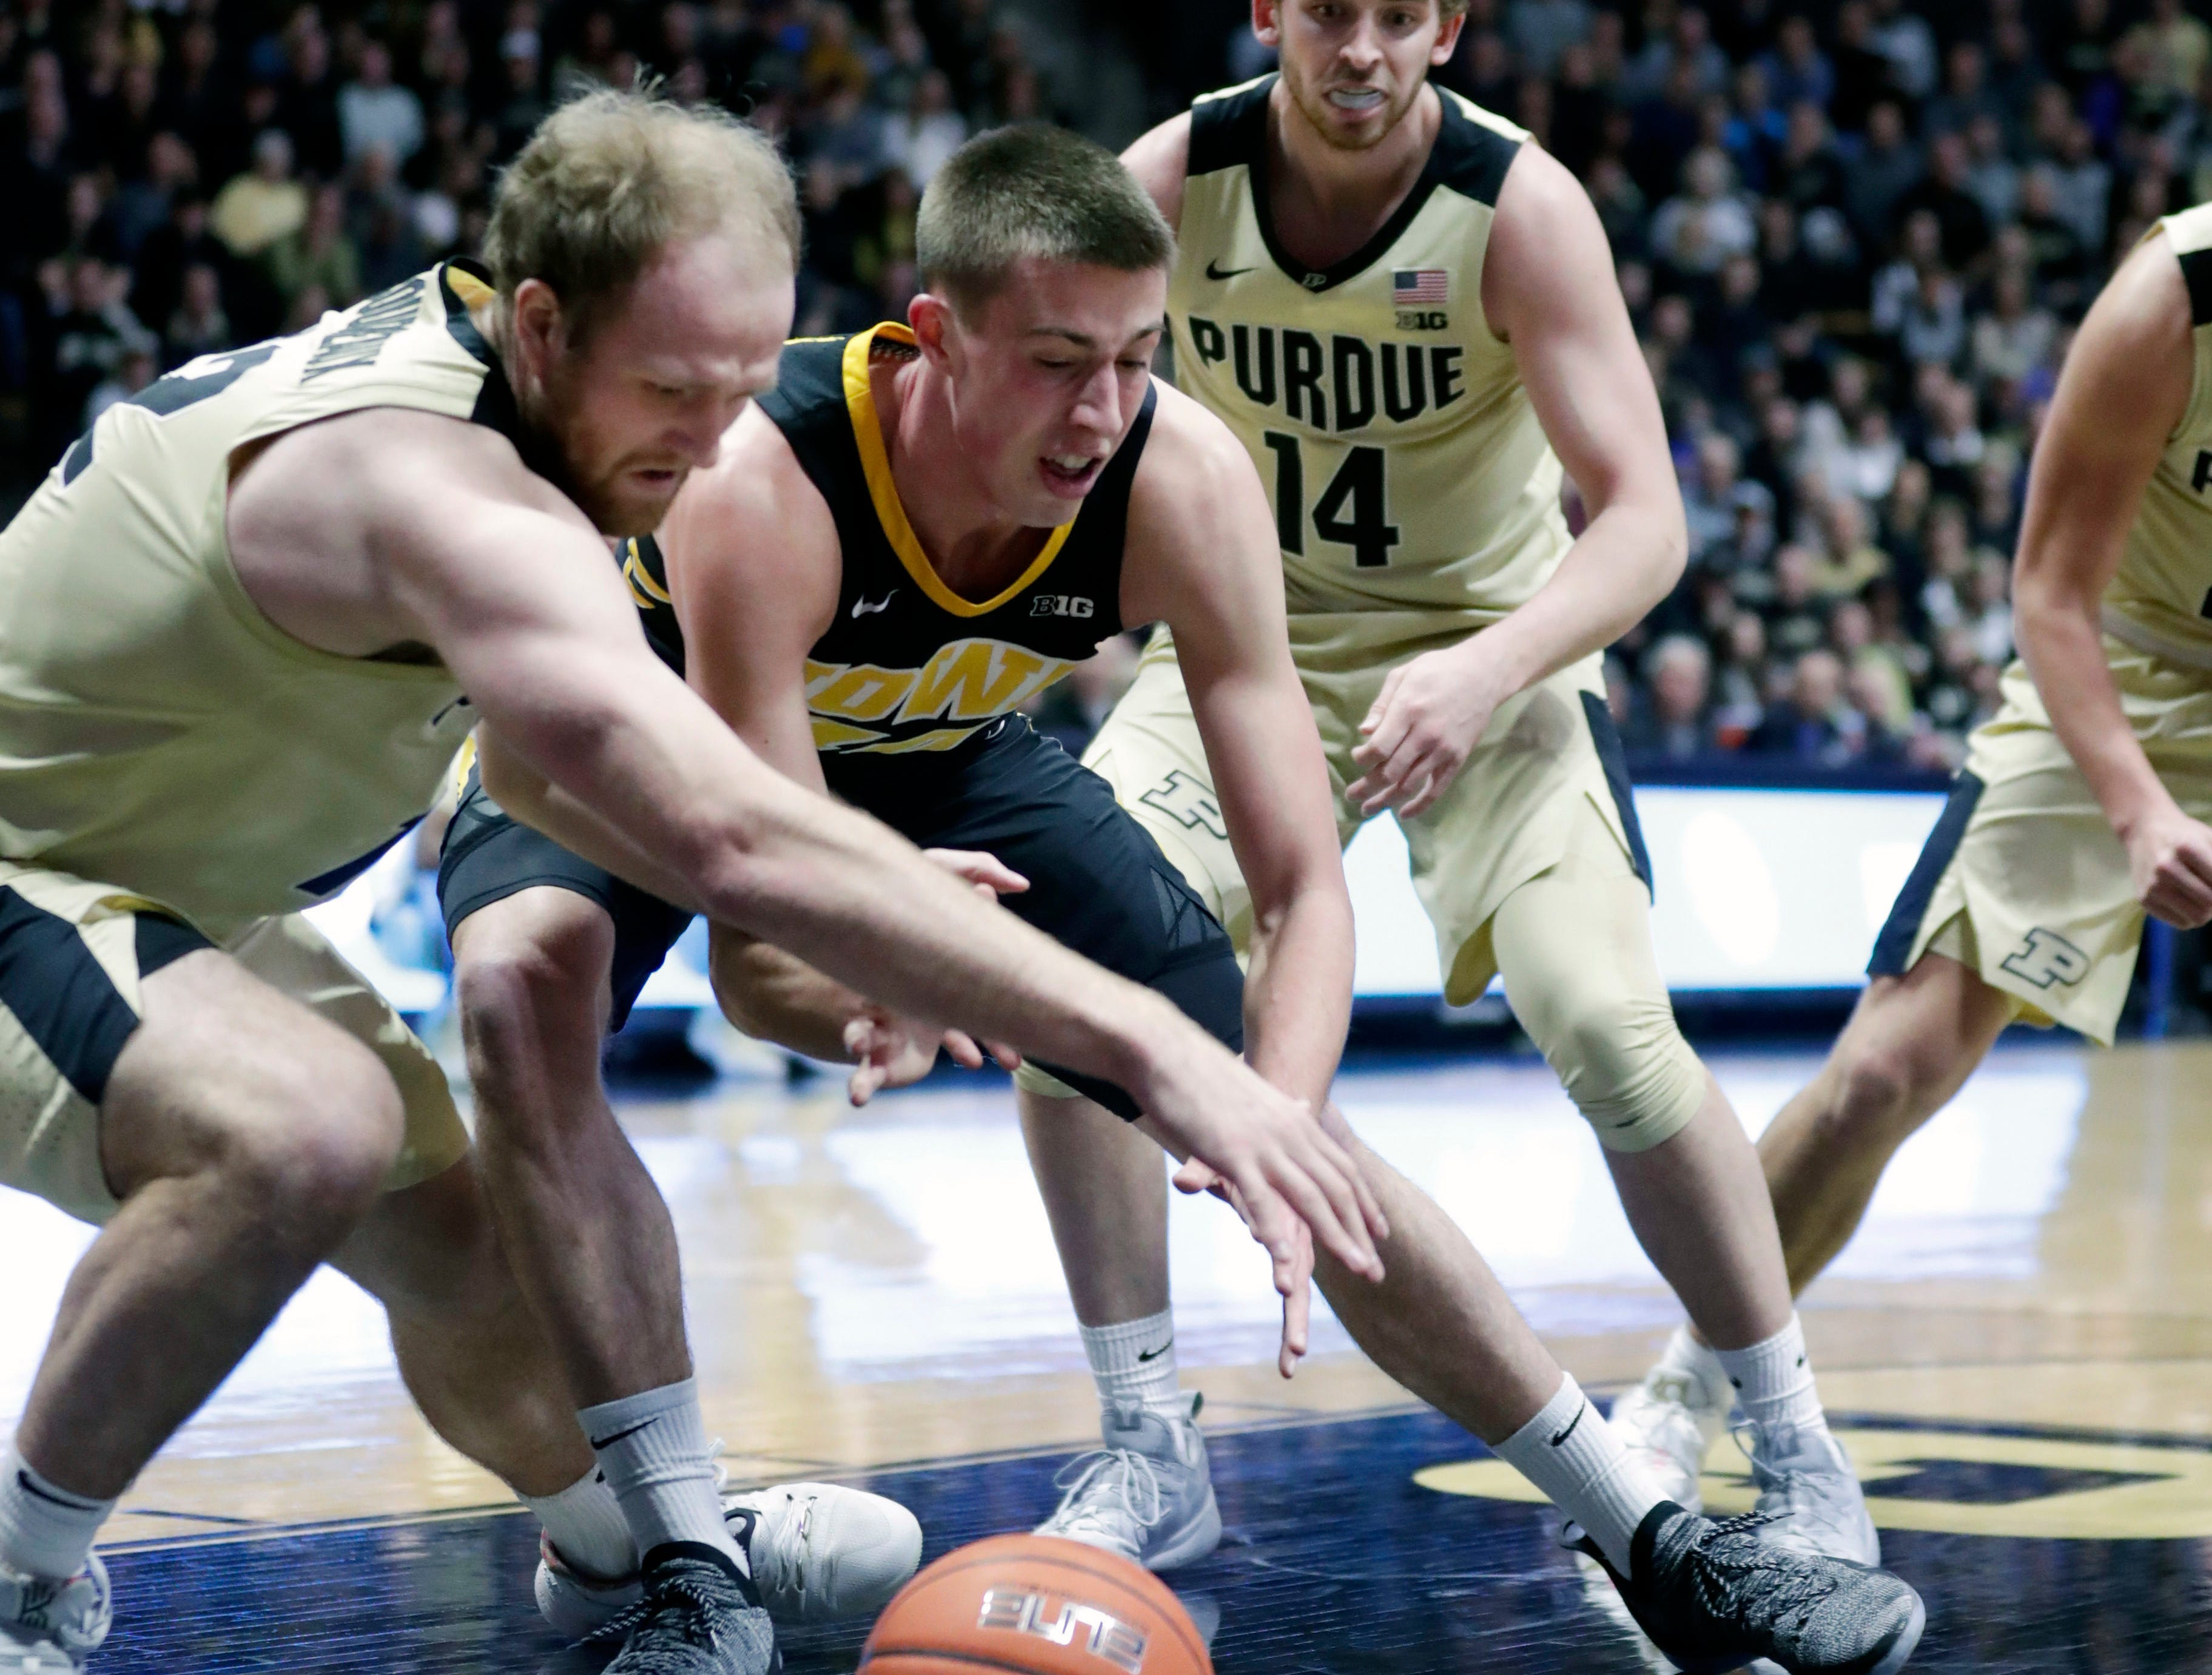 Iowa guard Joe Wieskamp (10) and Purdue forward Evan Boudreaux (12) battle for a loose ball during the first half of an NCAA college basketball game in West Lafayette, Ind., Thursday, Jan. 3, 2019.